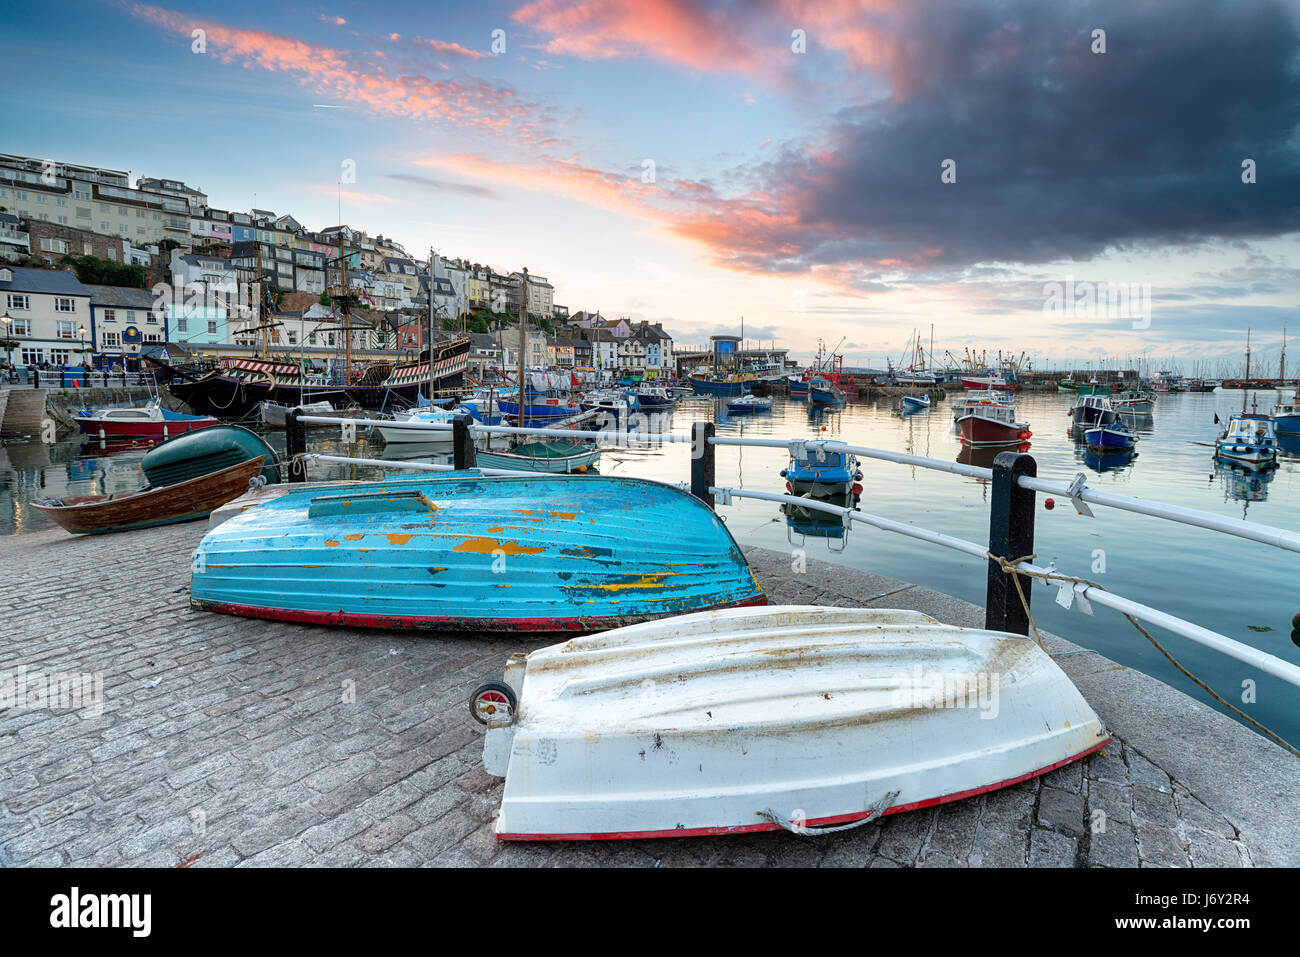 Sunset over the harbour at Brixham on the south coast of Devon - Stock Image